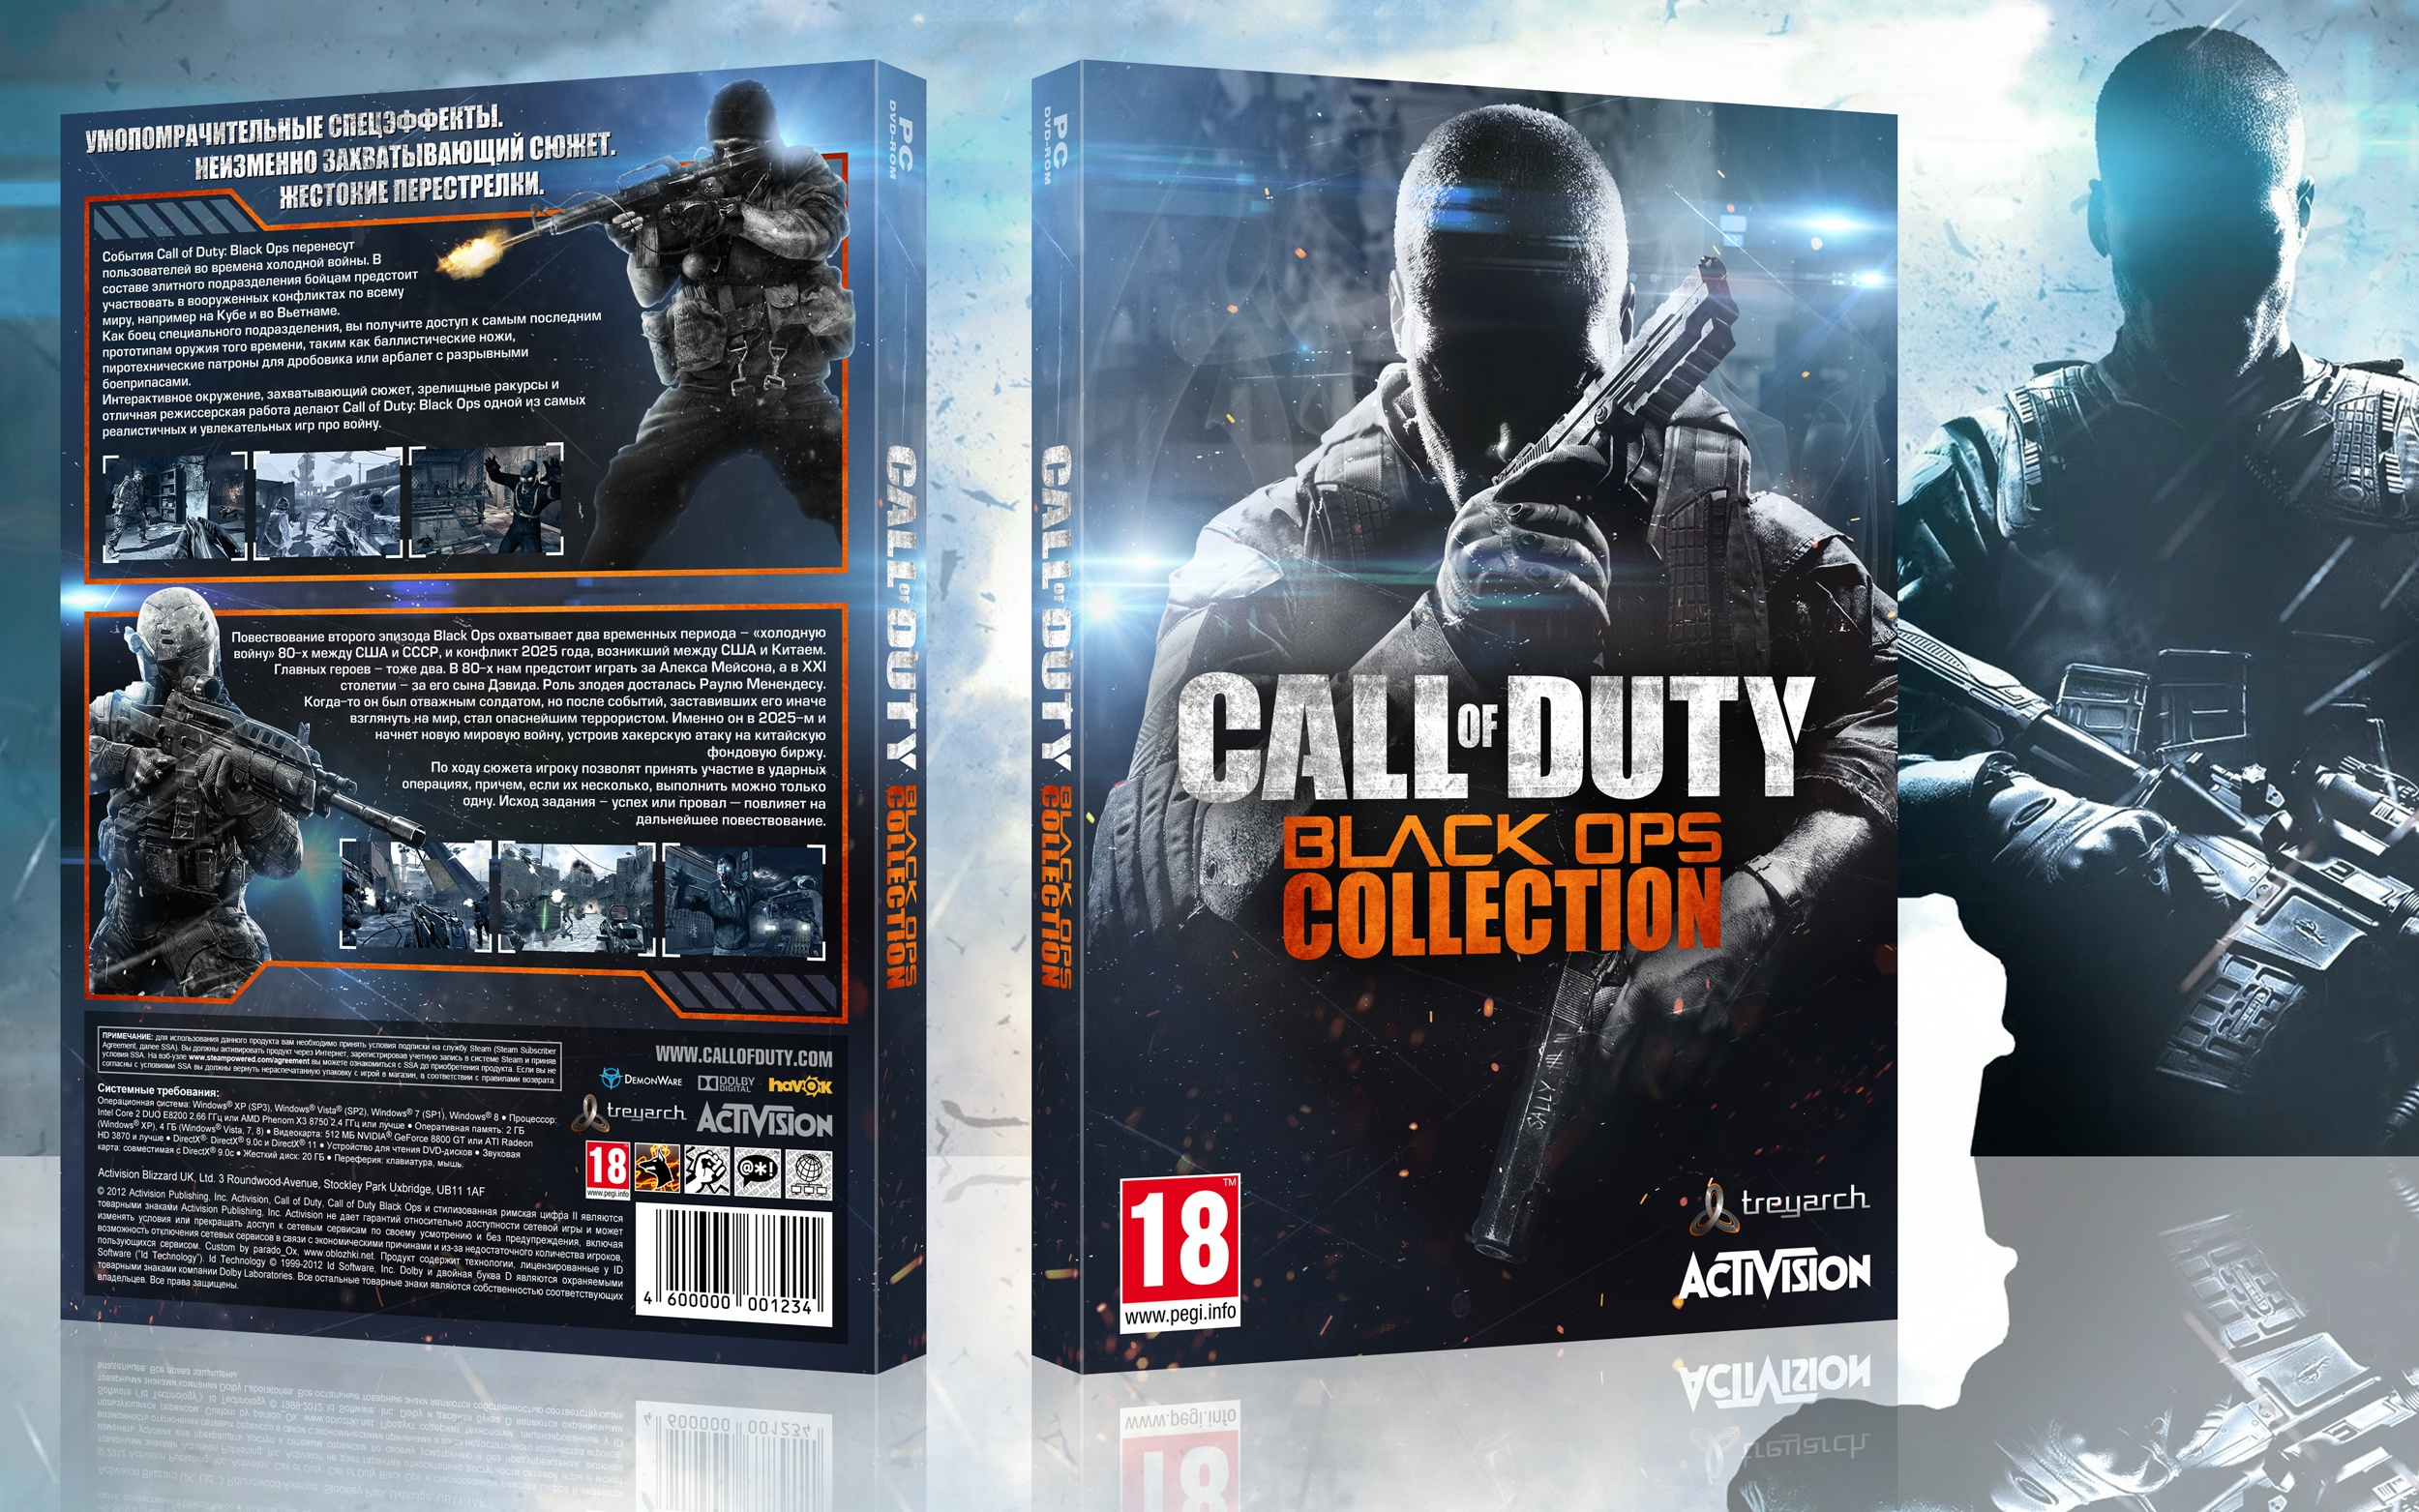 Call Of Duty: Black Ops Collection box cover